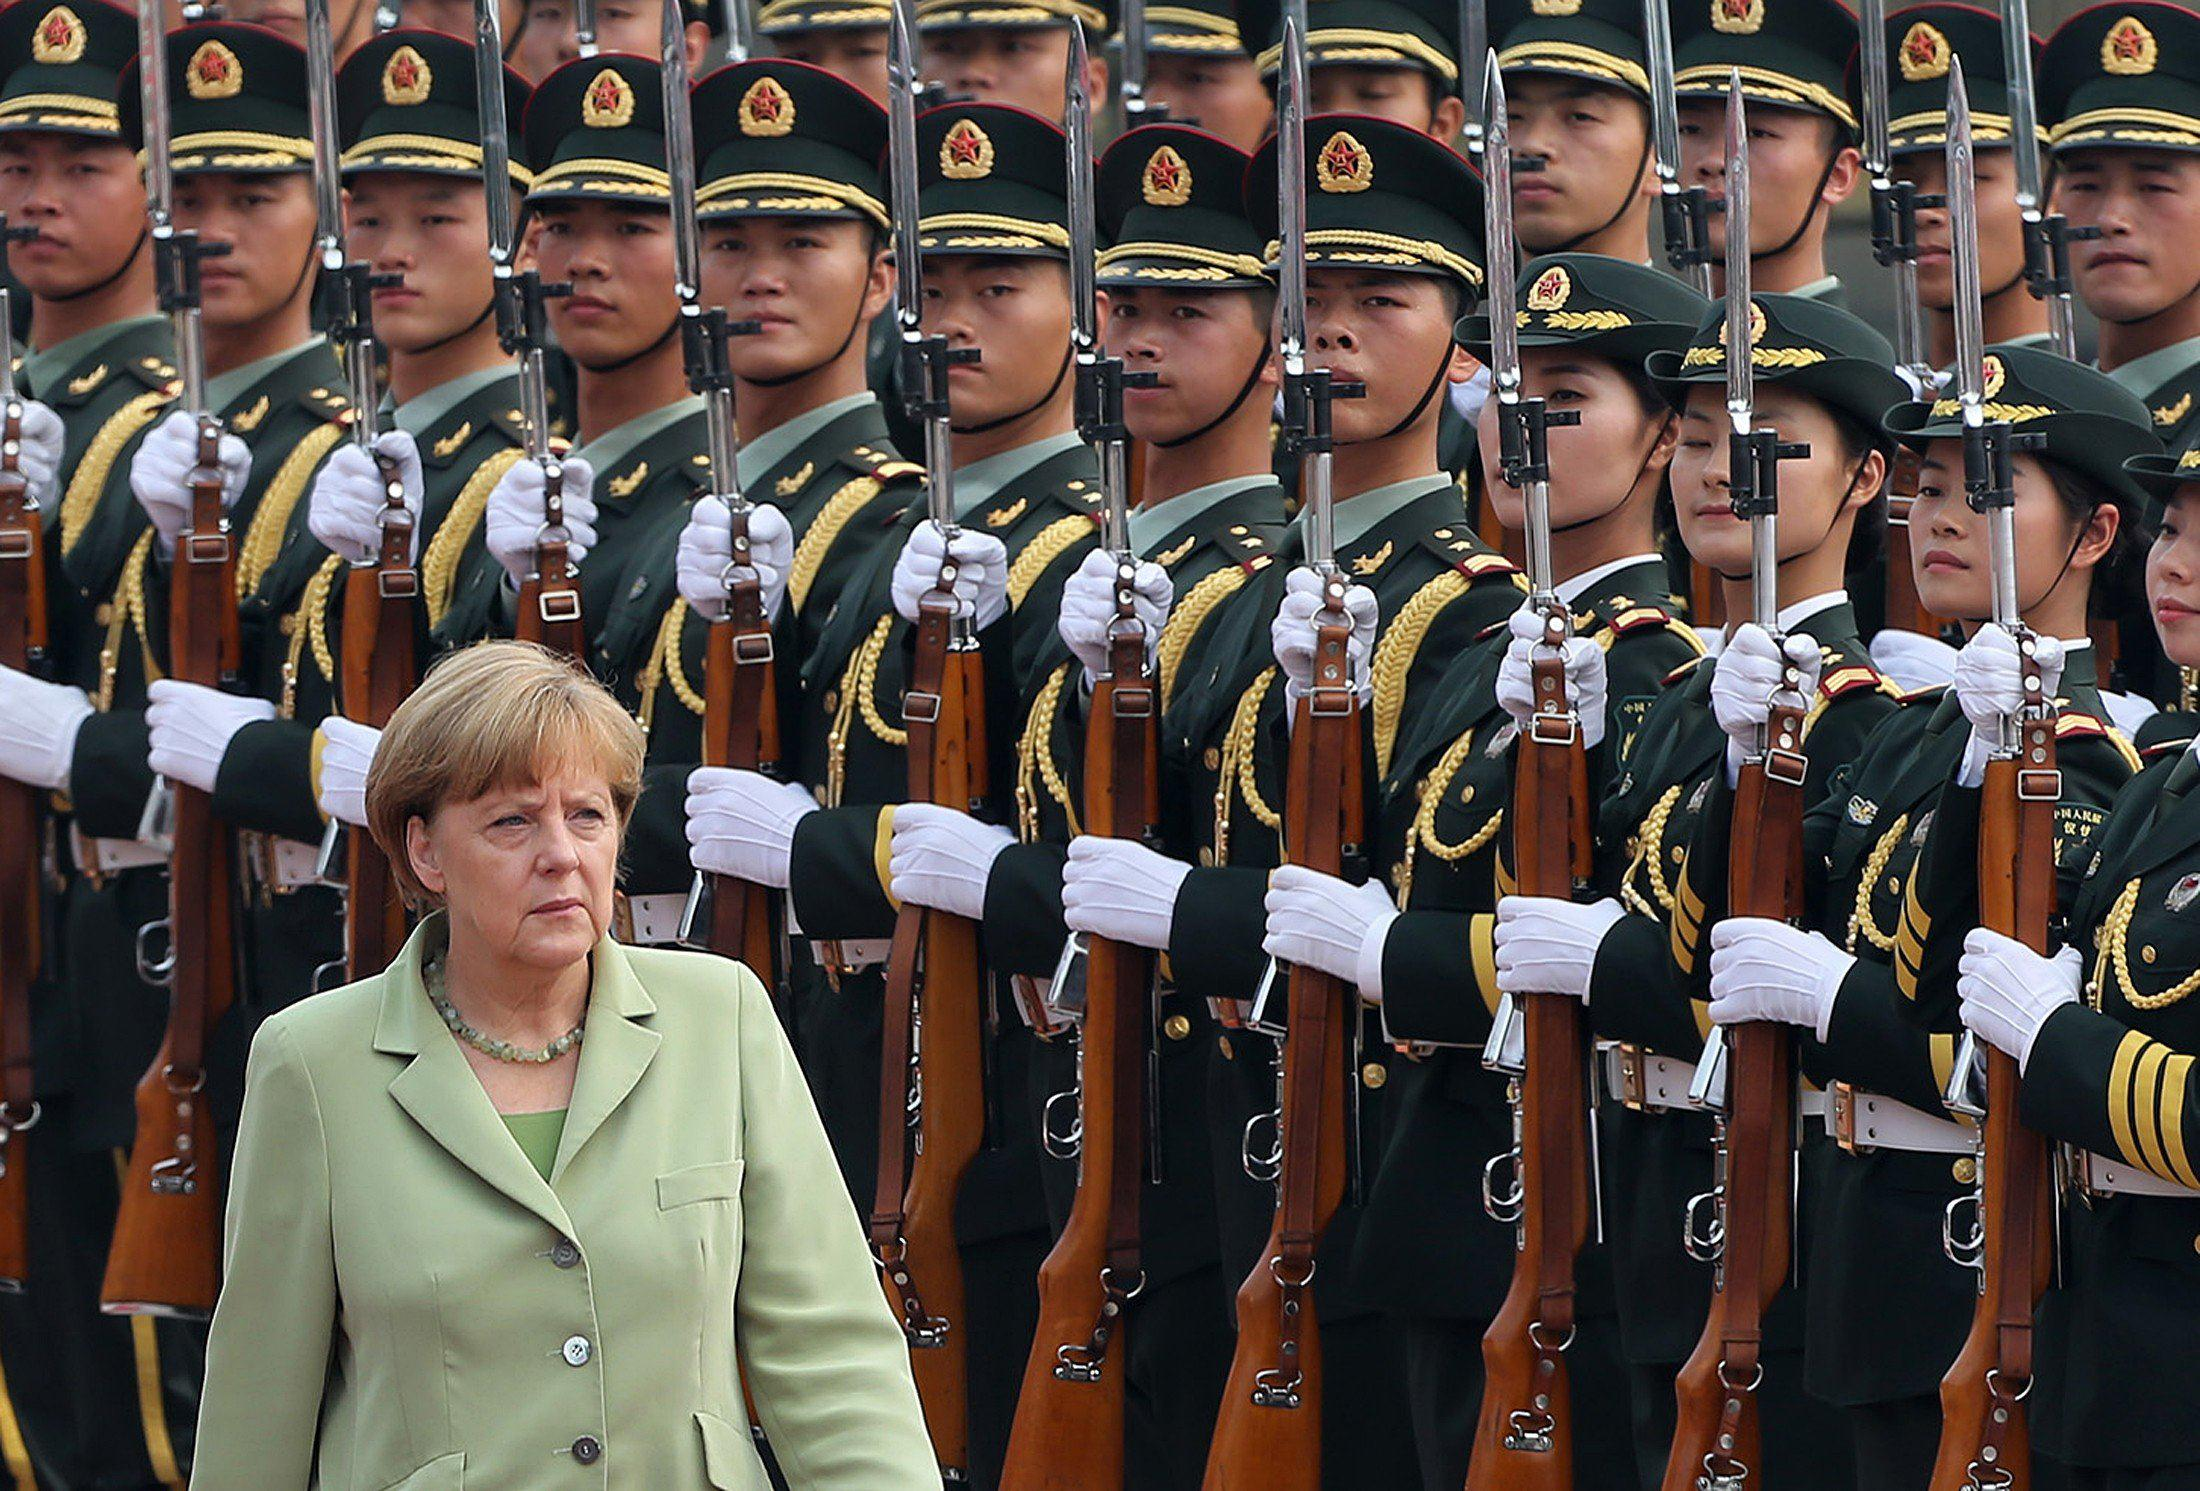 Image: Germany's Chancellor Angela Merkel reviews an honour guard during a welcoming ceremony outside the Great Hall of the People in Beijing